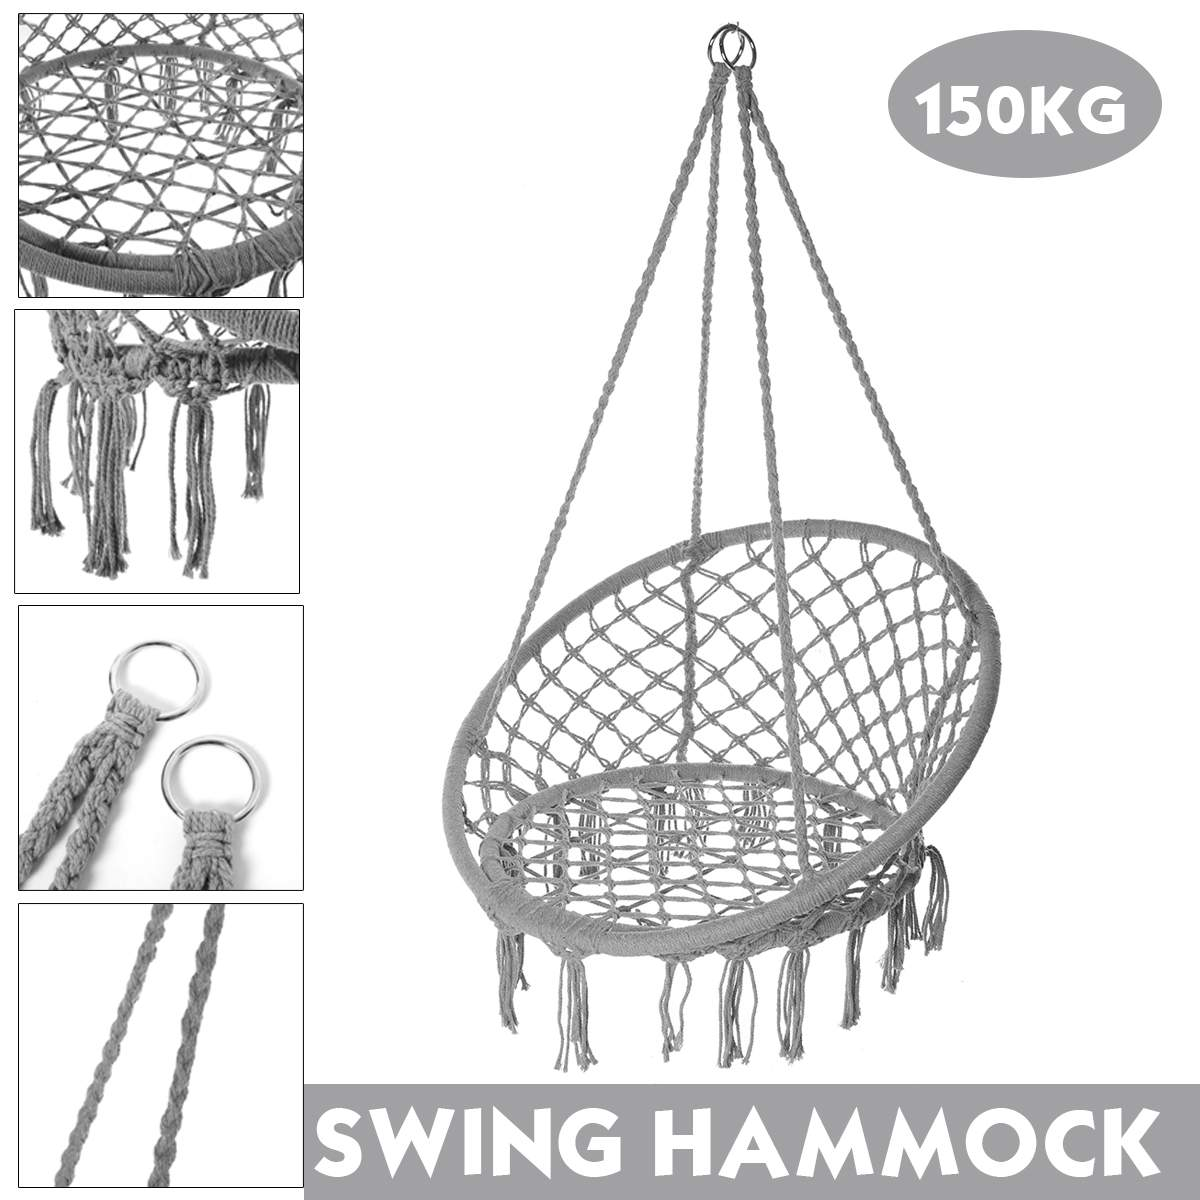 150KG Round Hammock Chair Outdoor Indoor Dormitory Bedroom Yard For Child Adult Swinging Hanging Single Safety Chair Hammock 1